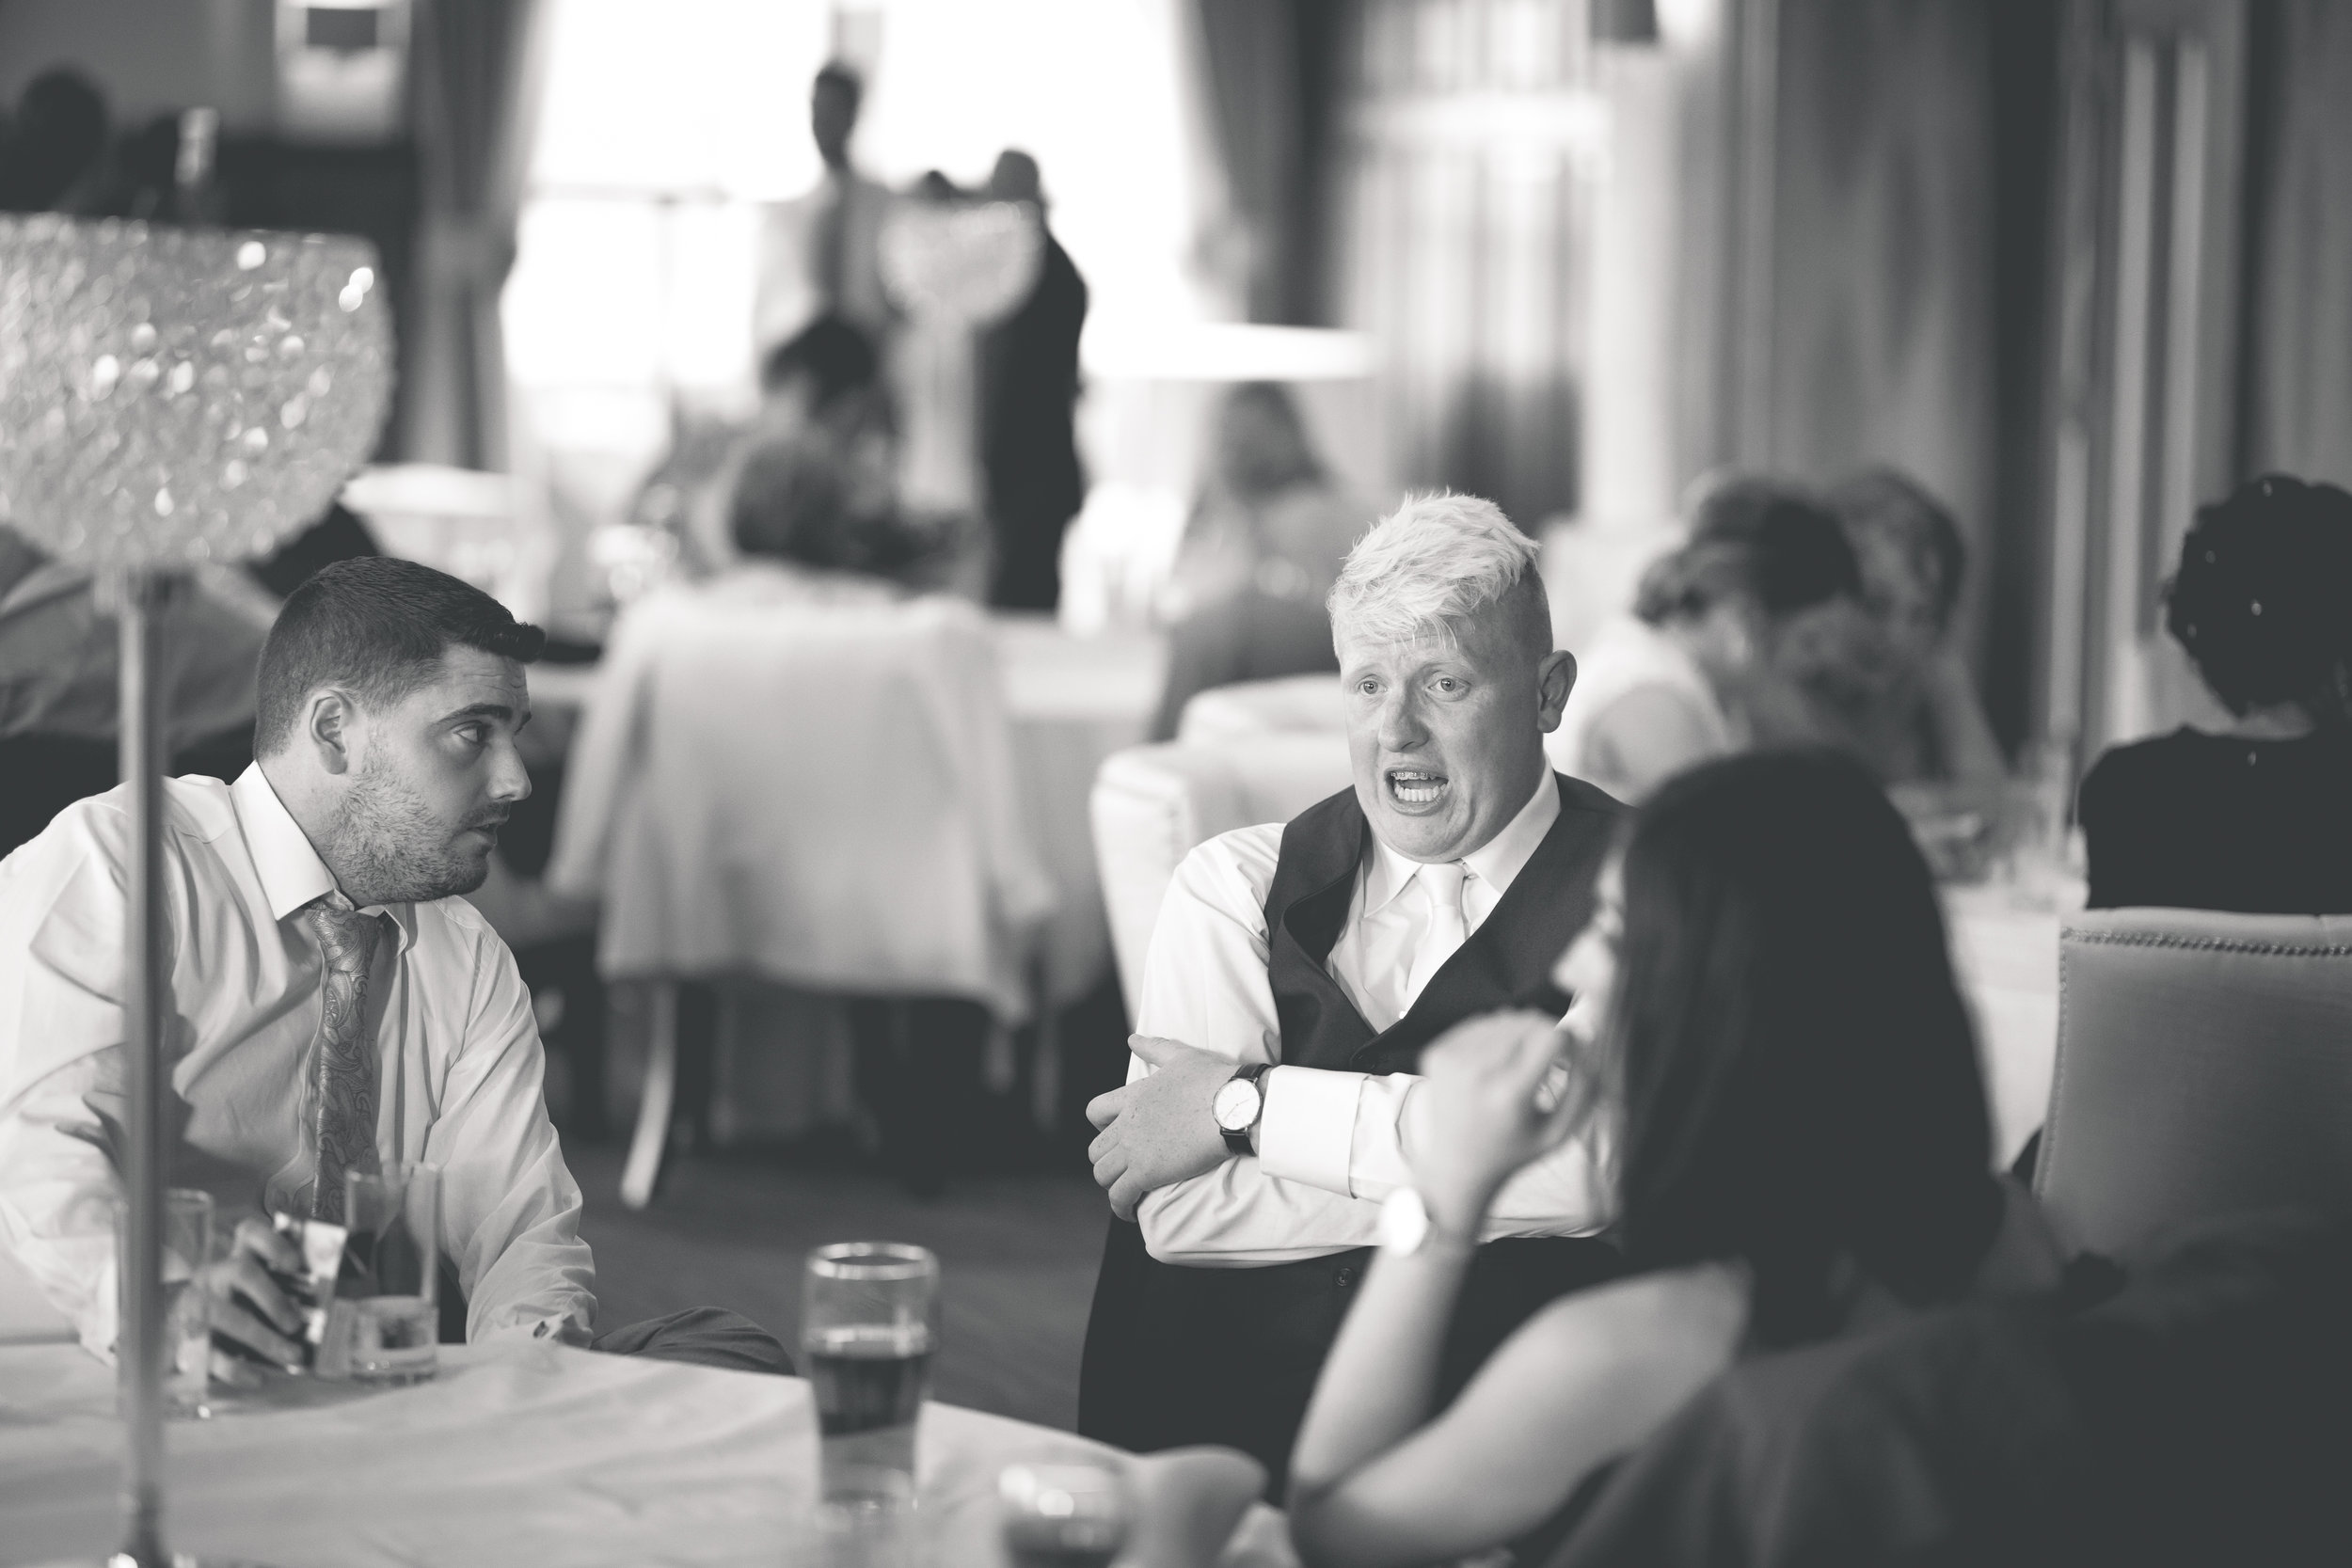 Antoinette & Stephen - Speeches | Brian McEwan Photography | Wedding Photographer Northern Ireland 134.jpg